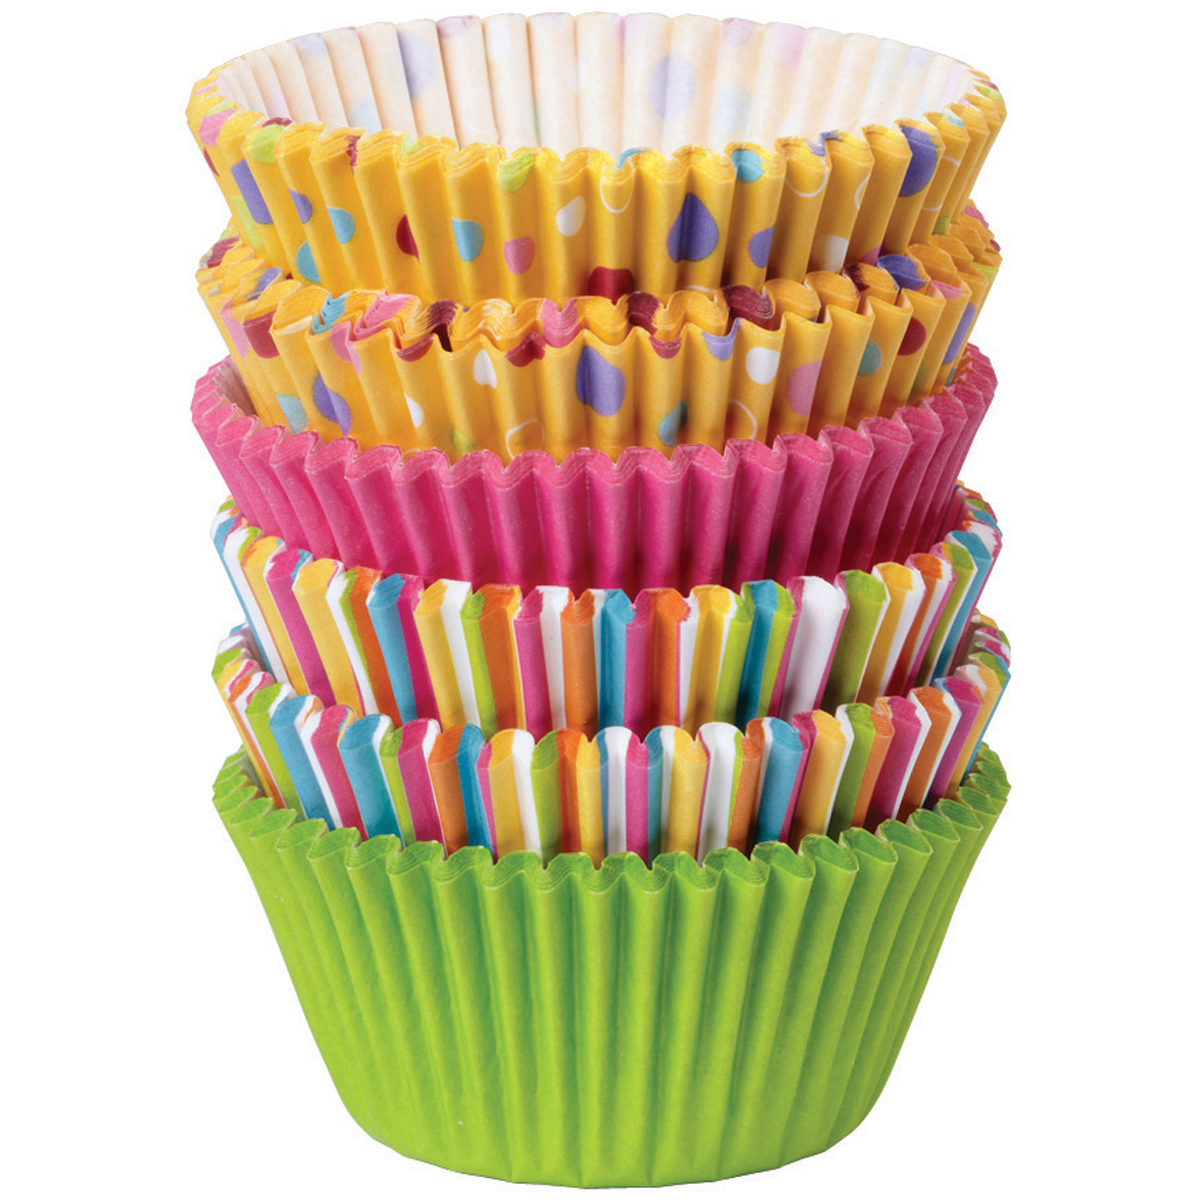 Wilton® Sweet Dots and Stripes standard Baking Cups 150ct